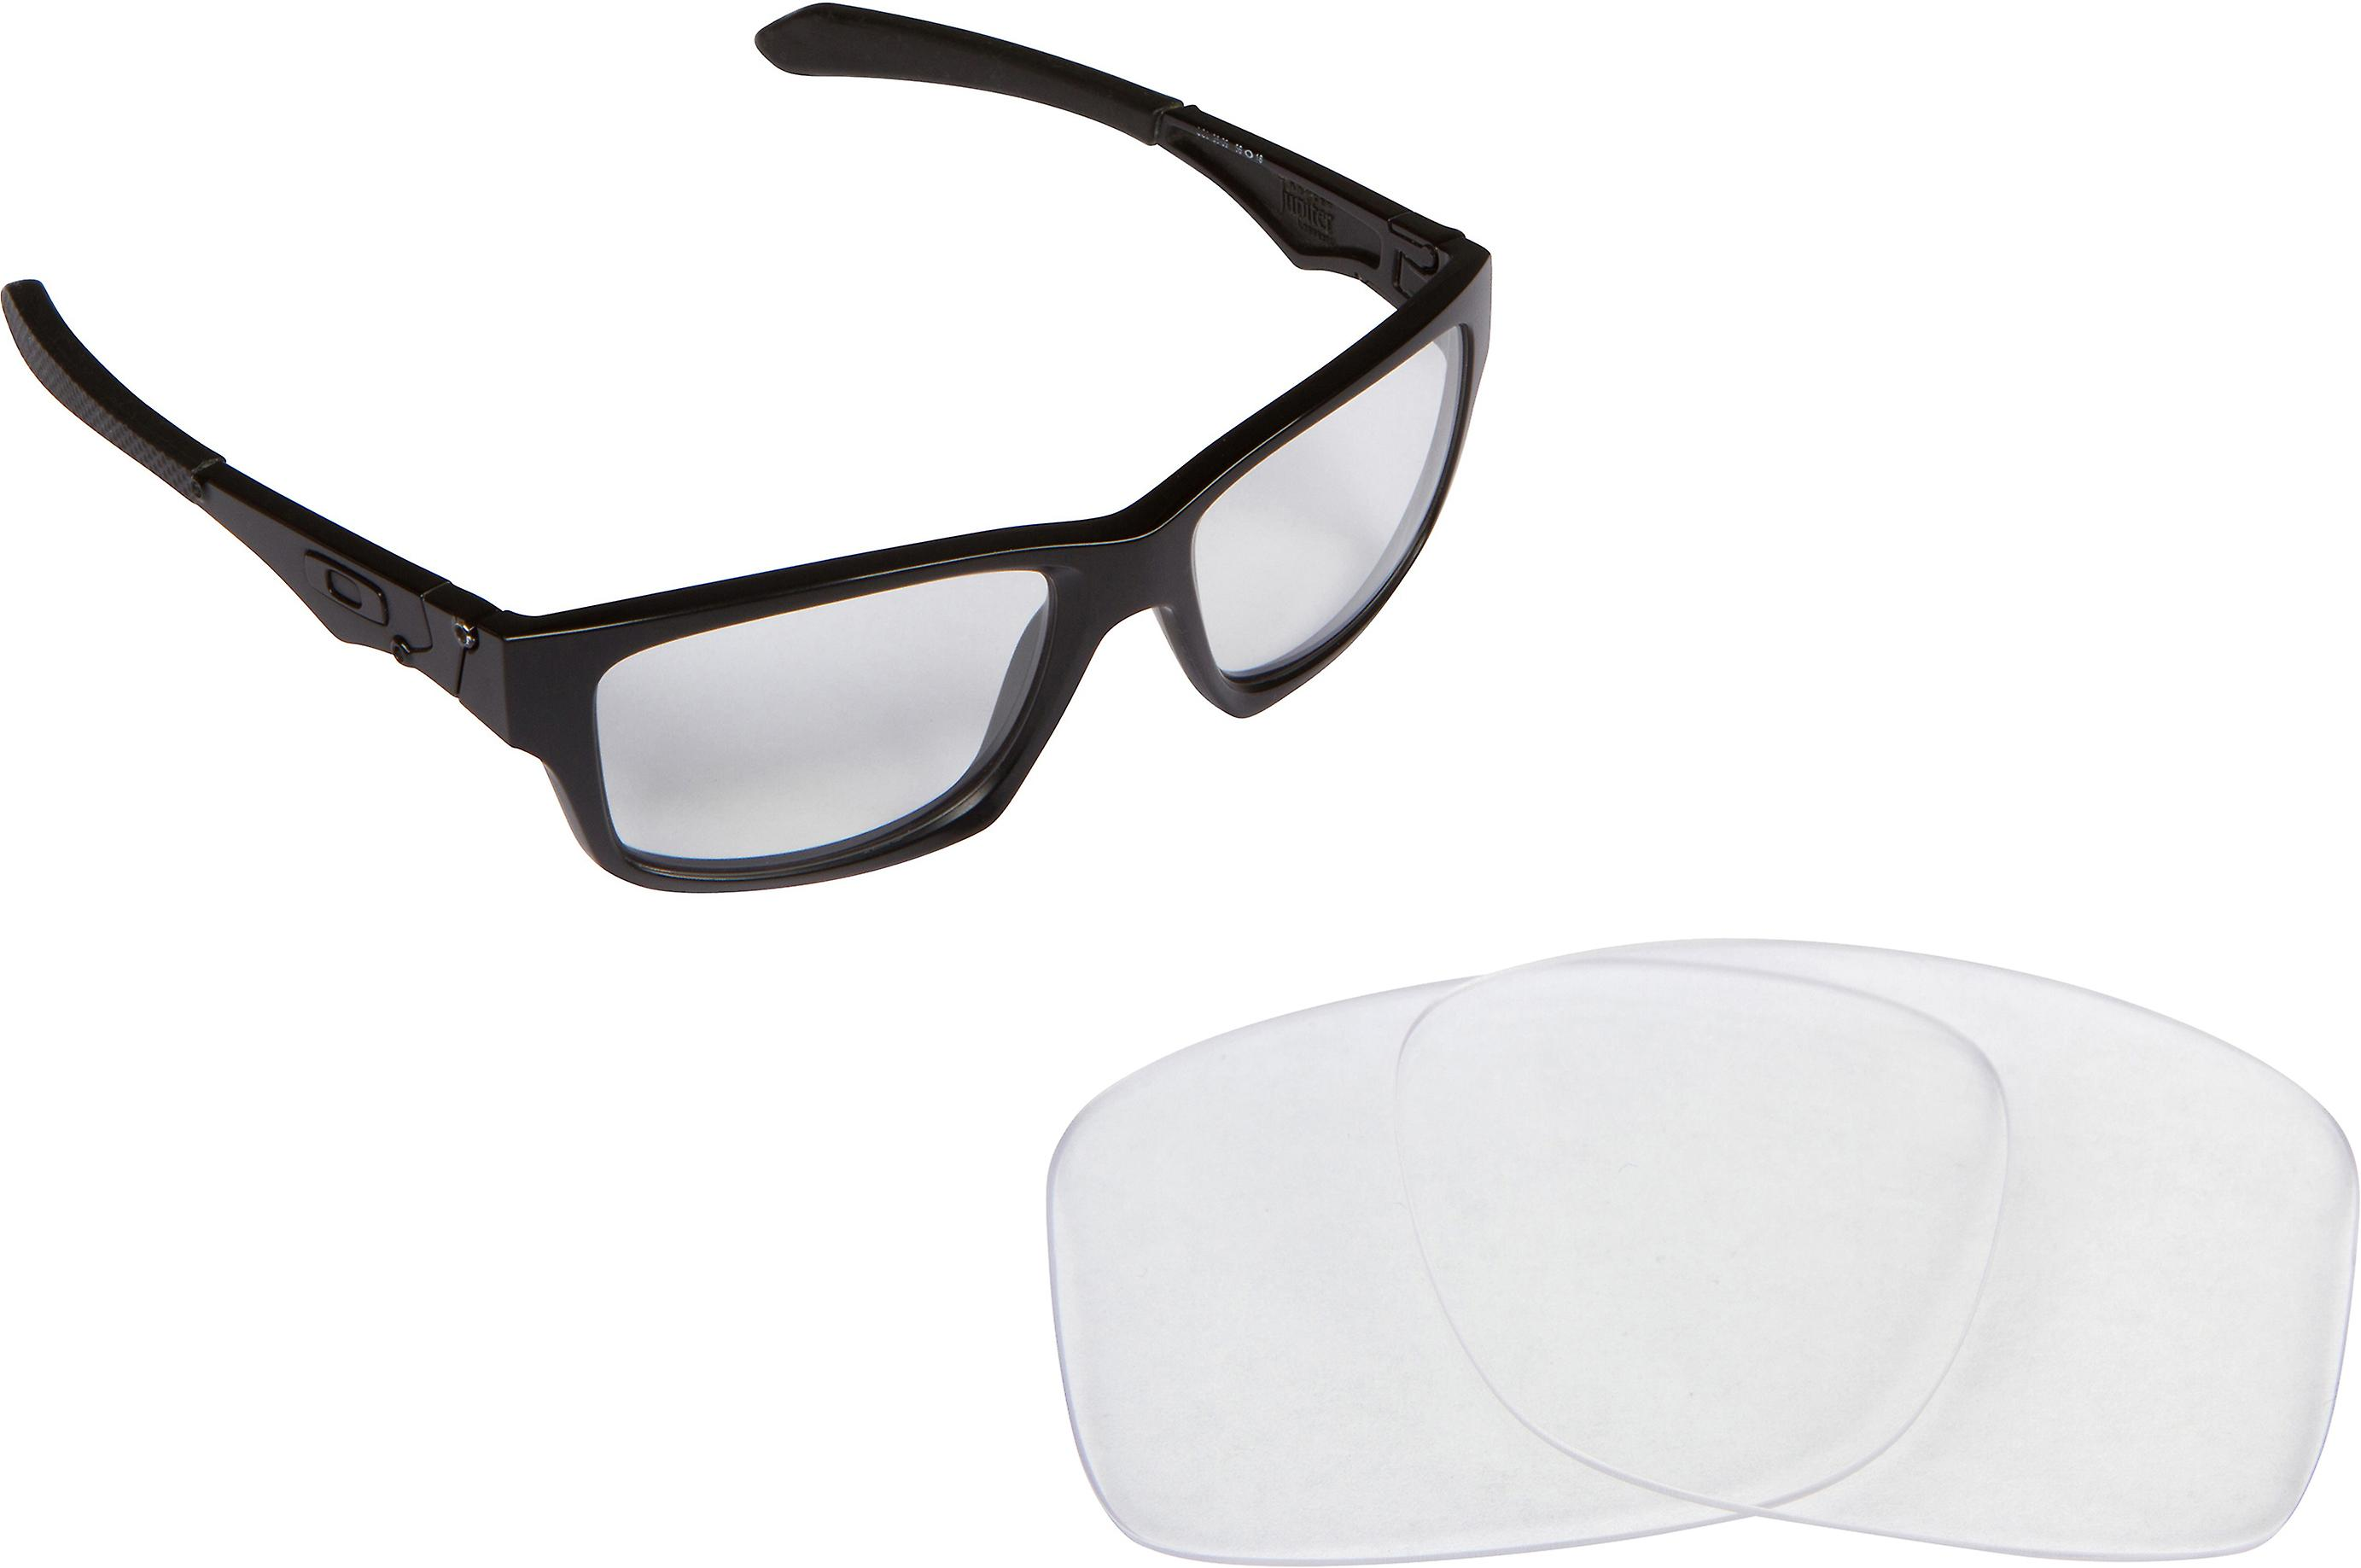 2a7dcd41ea JUPITER SQUARED Replacement Lenses Crystal Clear by SEEK fits OAKLEY  Sunglasses